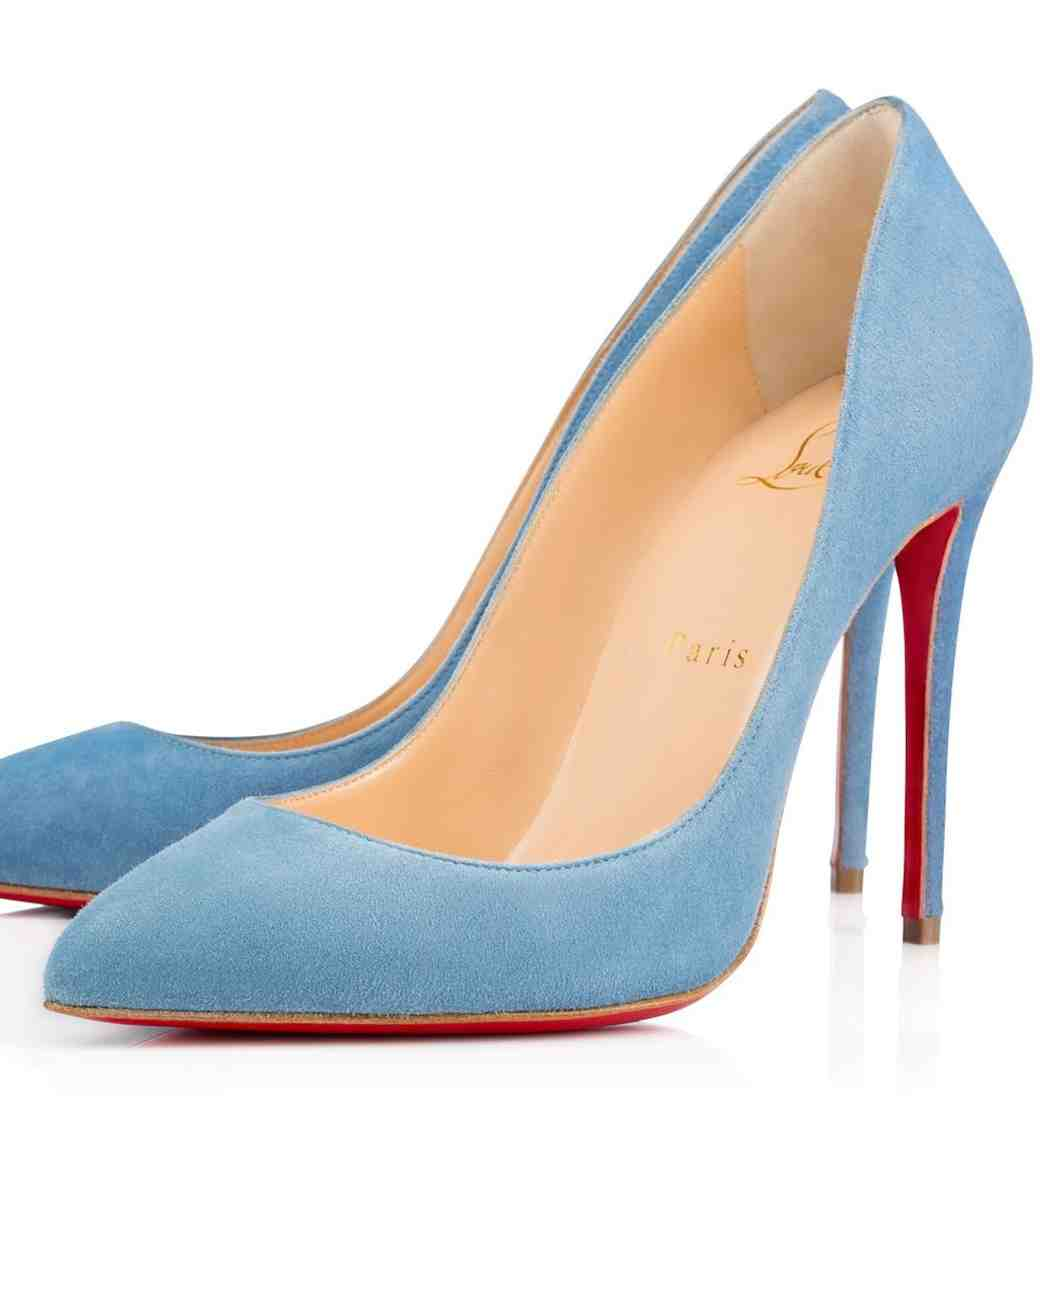 Christian Louboutin classic Blue Suede Pumps